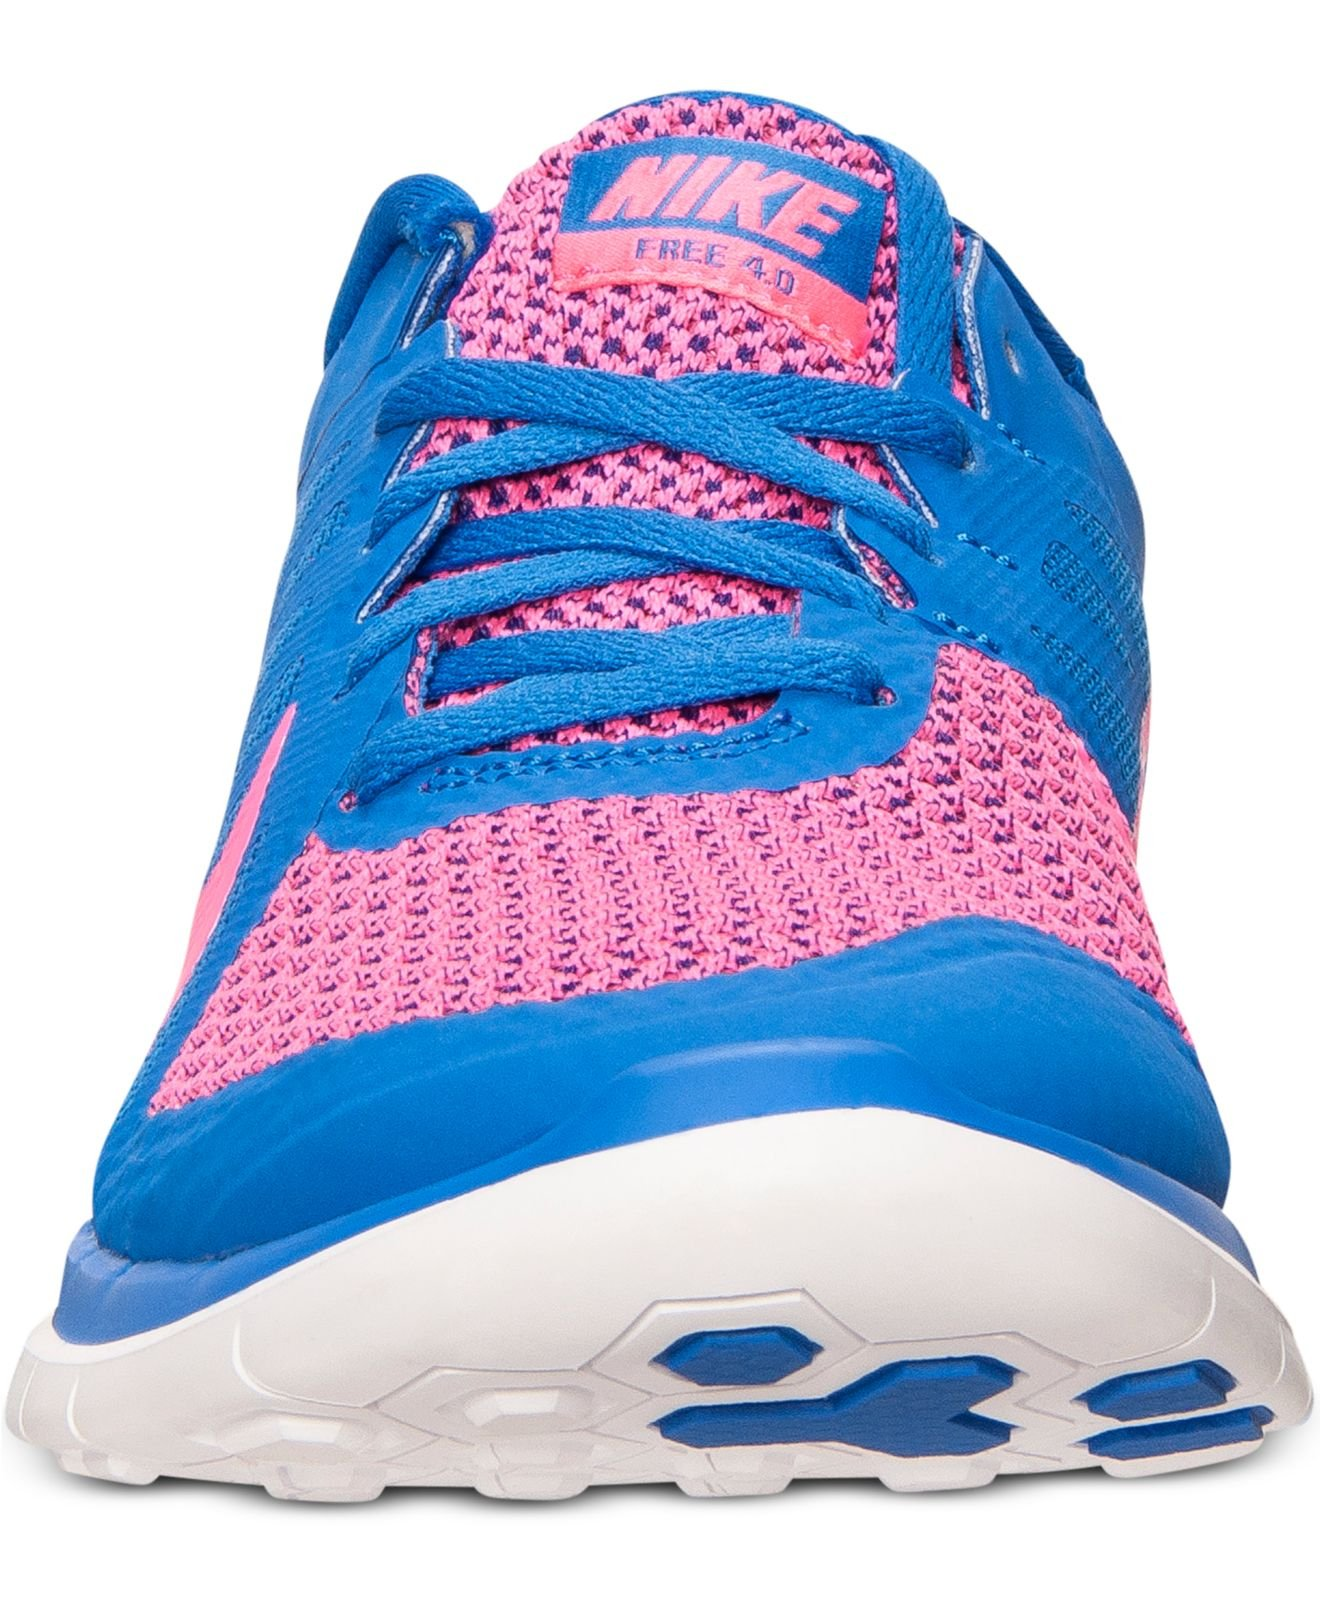 huge selection of 9851b ff8c2 Lyst - Nike Women S Free 4.0 V4 Running Sneakers From Finish Line in ...